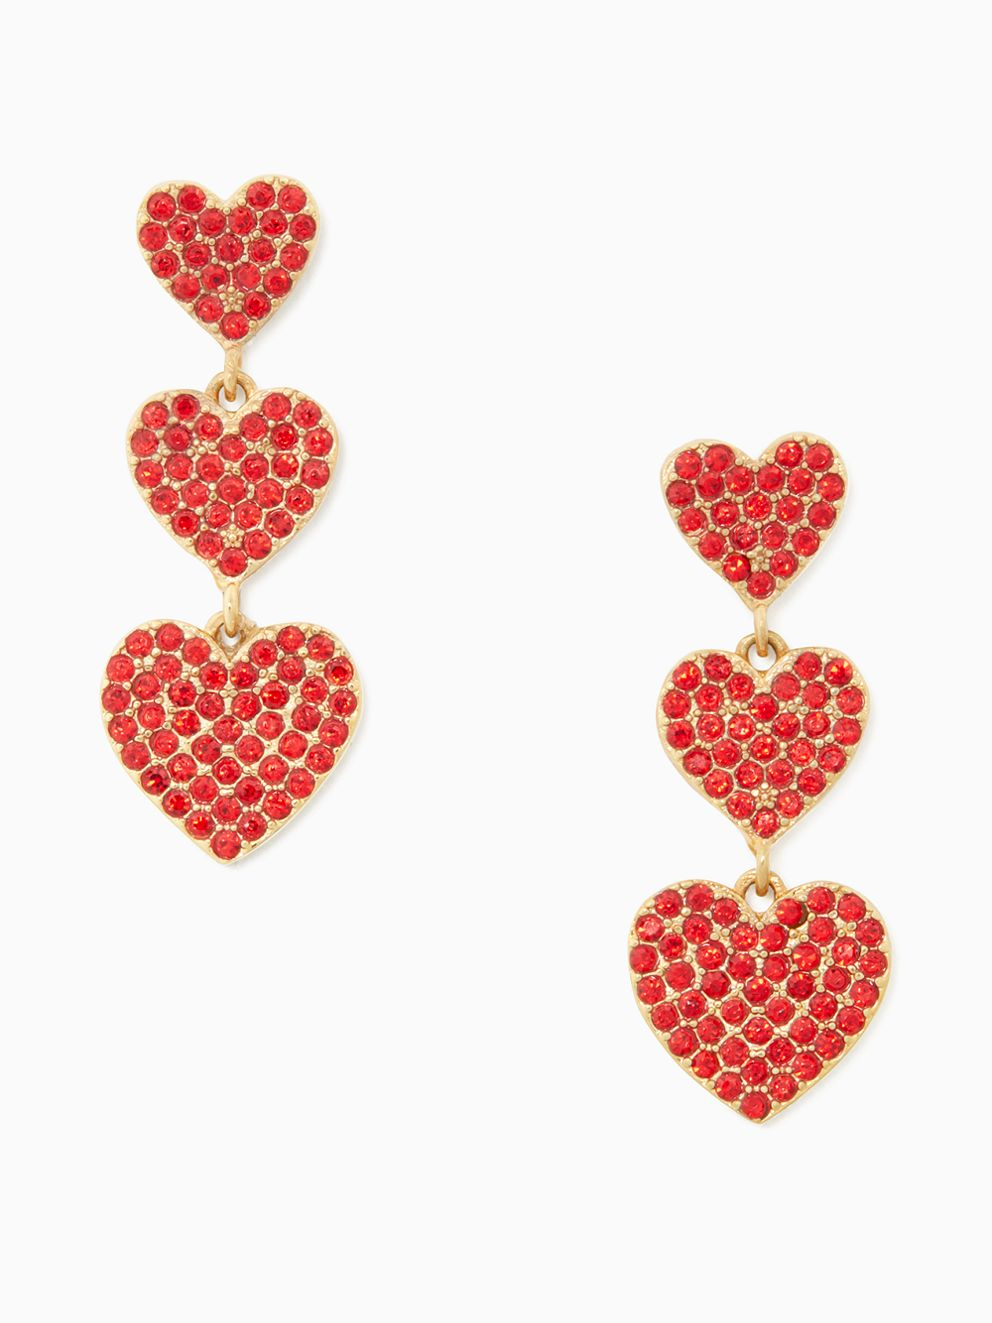 Kate Spade Yours Truly Pave Heart Triple Drop Earrings - UK style blog